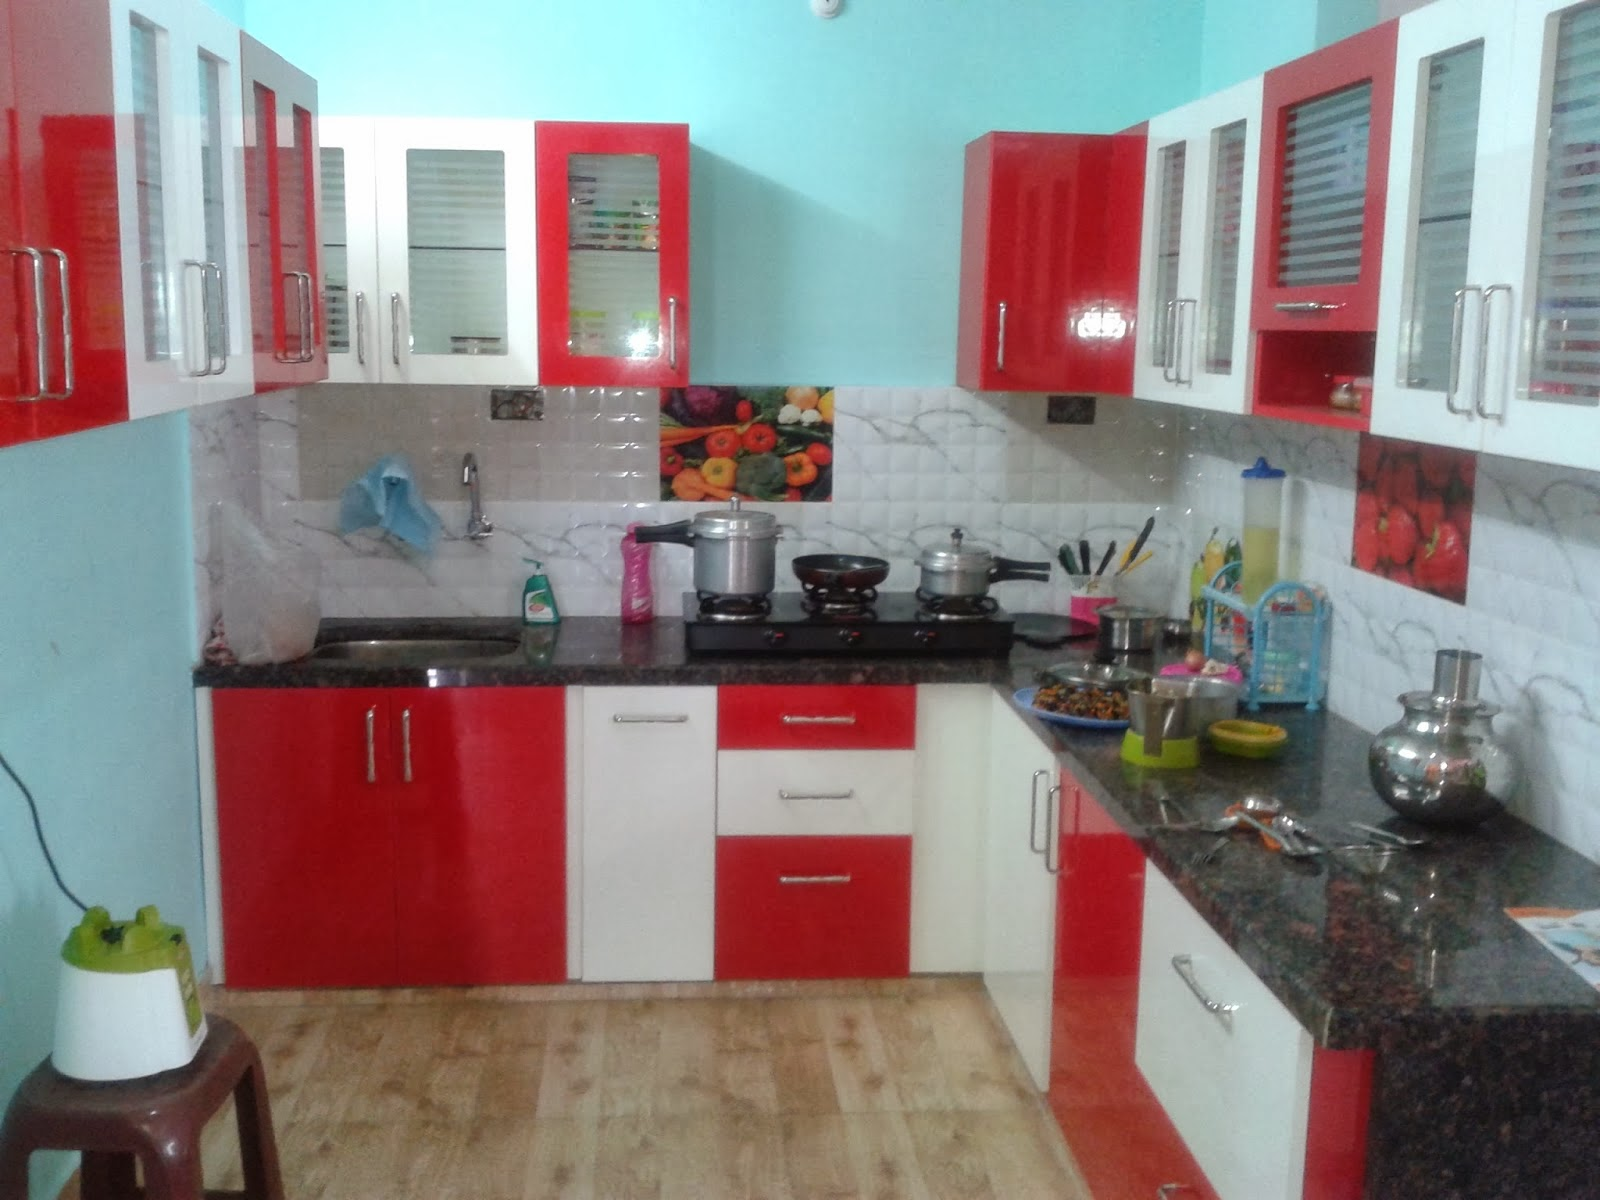 Streaks QUALITY VALUE SERVICE Home Interiors At  Streaks - Modular kitchen designs red white